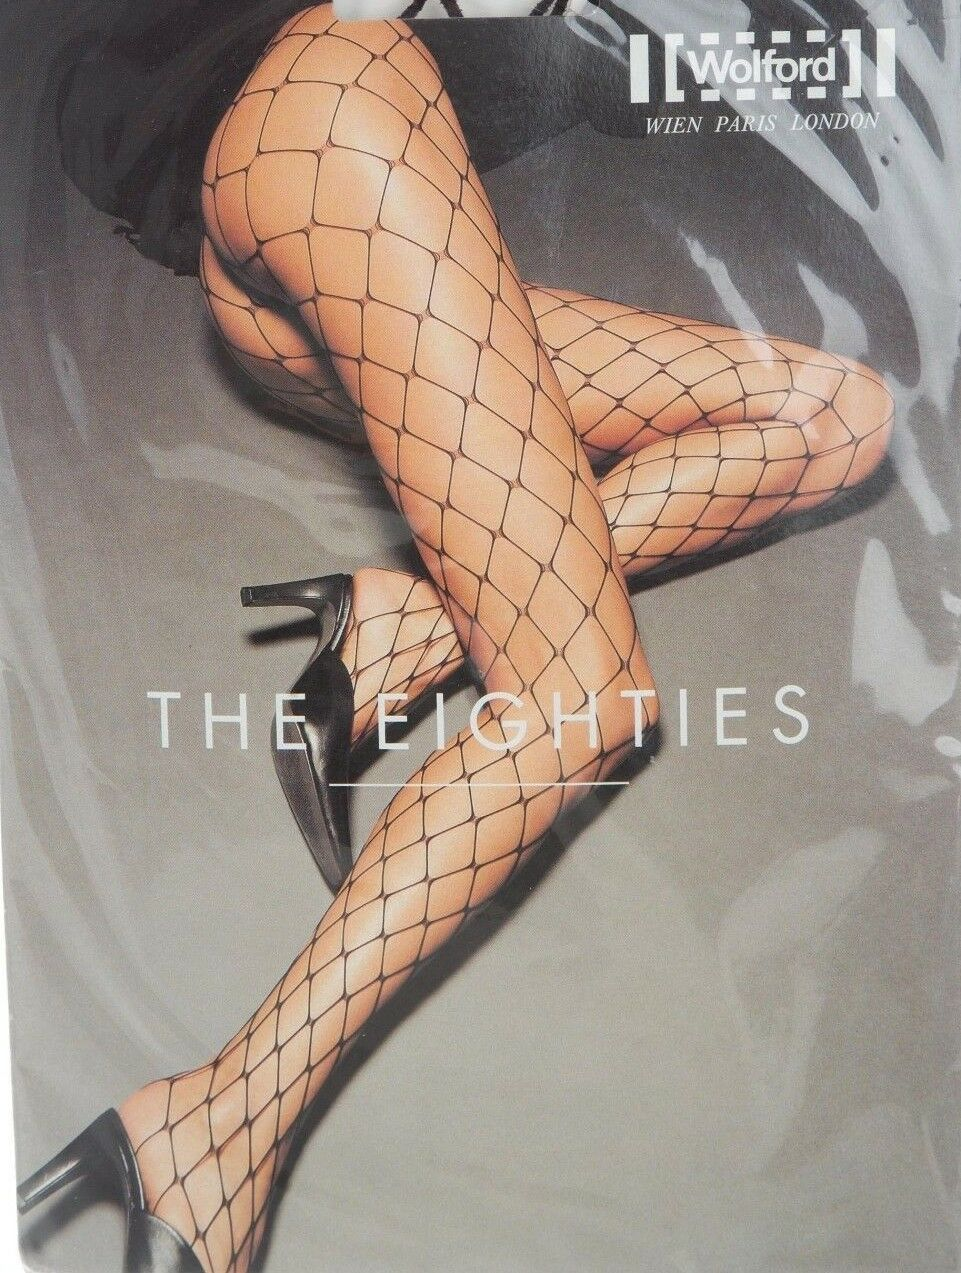 Wolford The Eighties Fishnet Tights color  Honey Size  Medium 11890 - 12